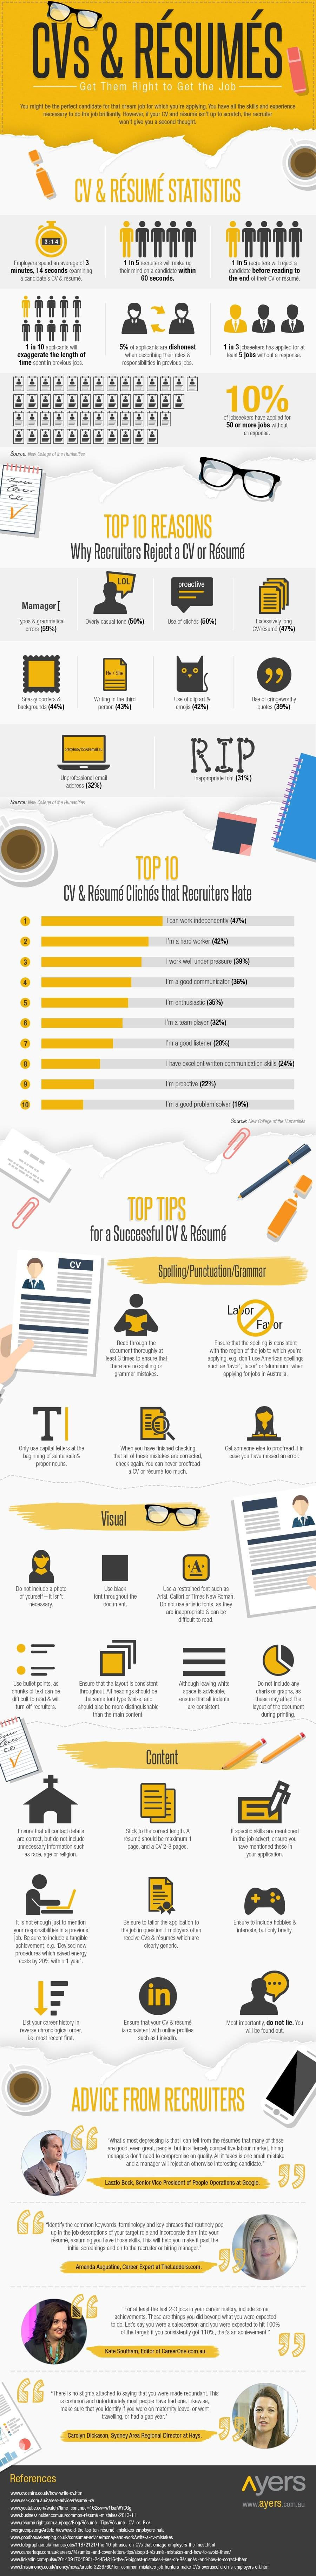 Is Your Resume Up to Scratch? (Infographic) - Social Talent